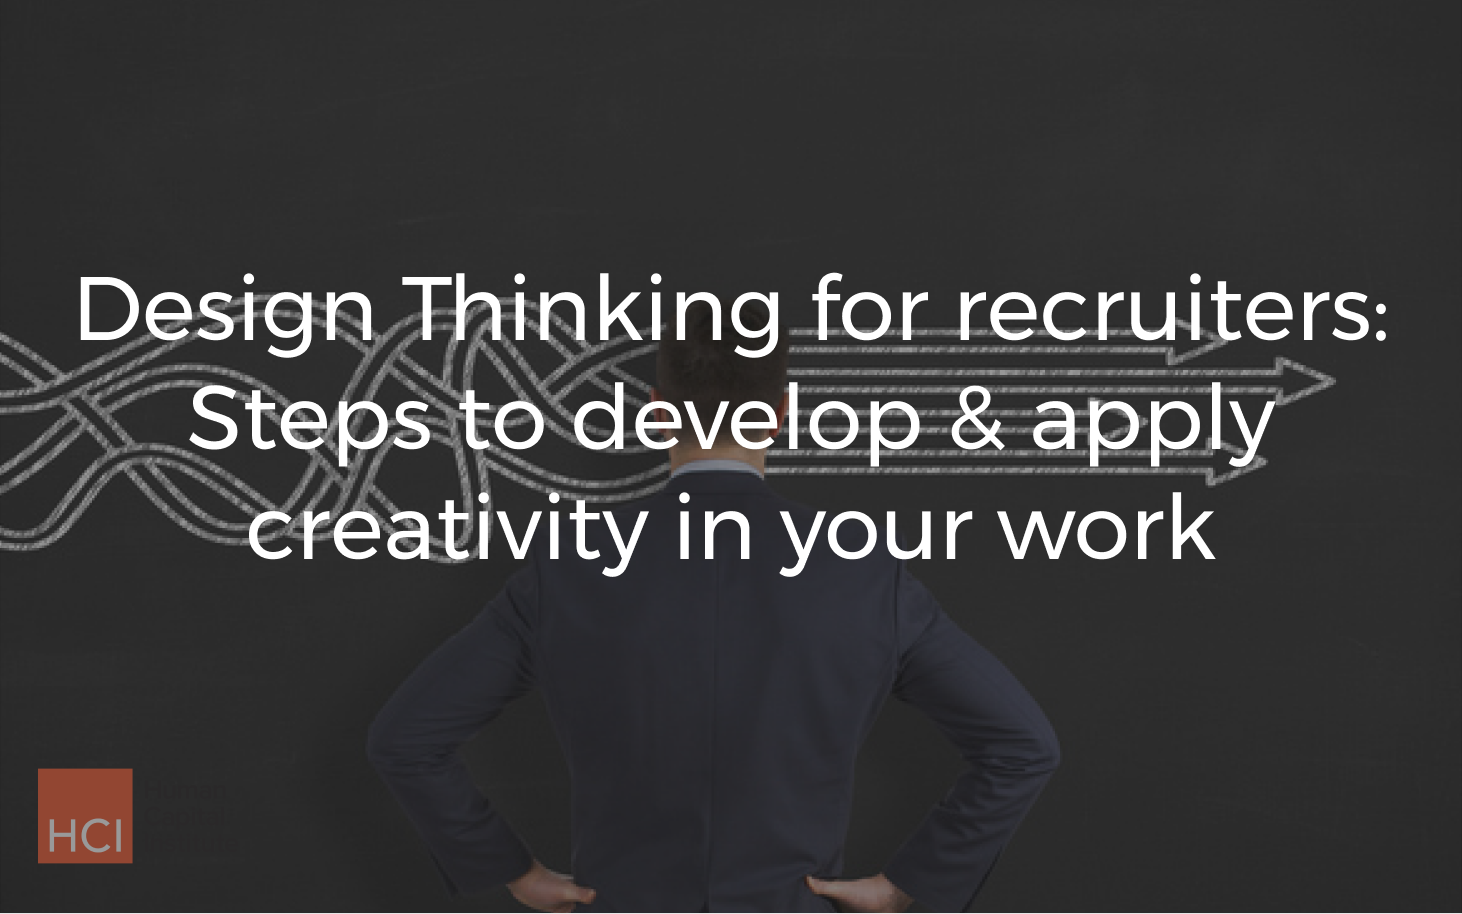 Everybody loves to hate HR. But HR/recruiters aren't bad people – their roles are too-often based on antiquated practices and principles, like emphasizing compliance over what makes sense. In this webinar with the Human Capital Institute, I covered how recruiters can embrace creativity and start practicing new skills in design thinking.